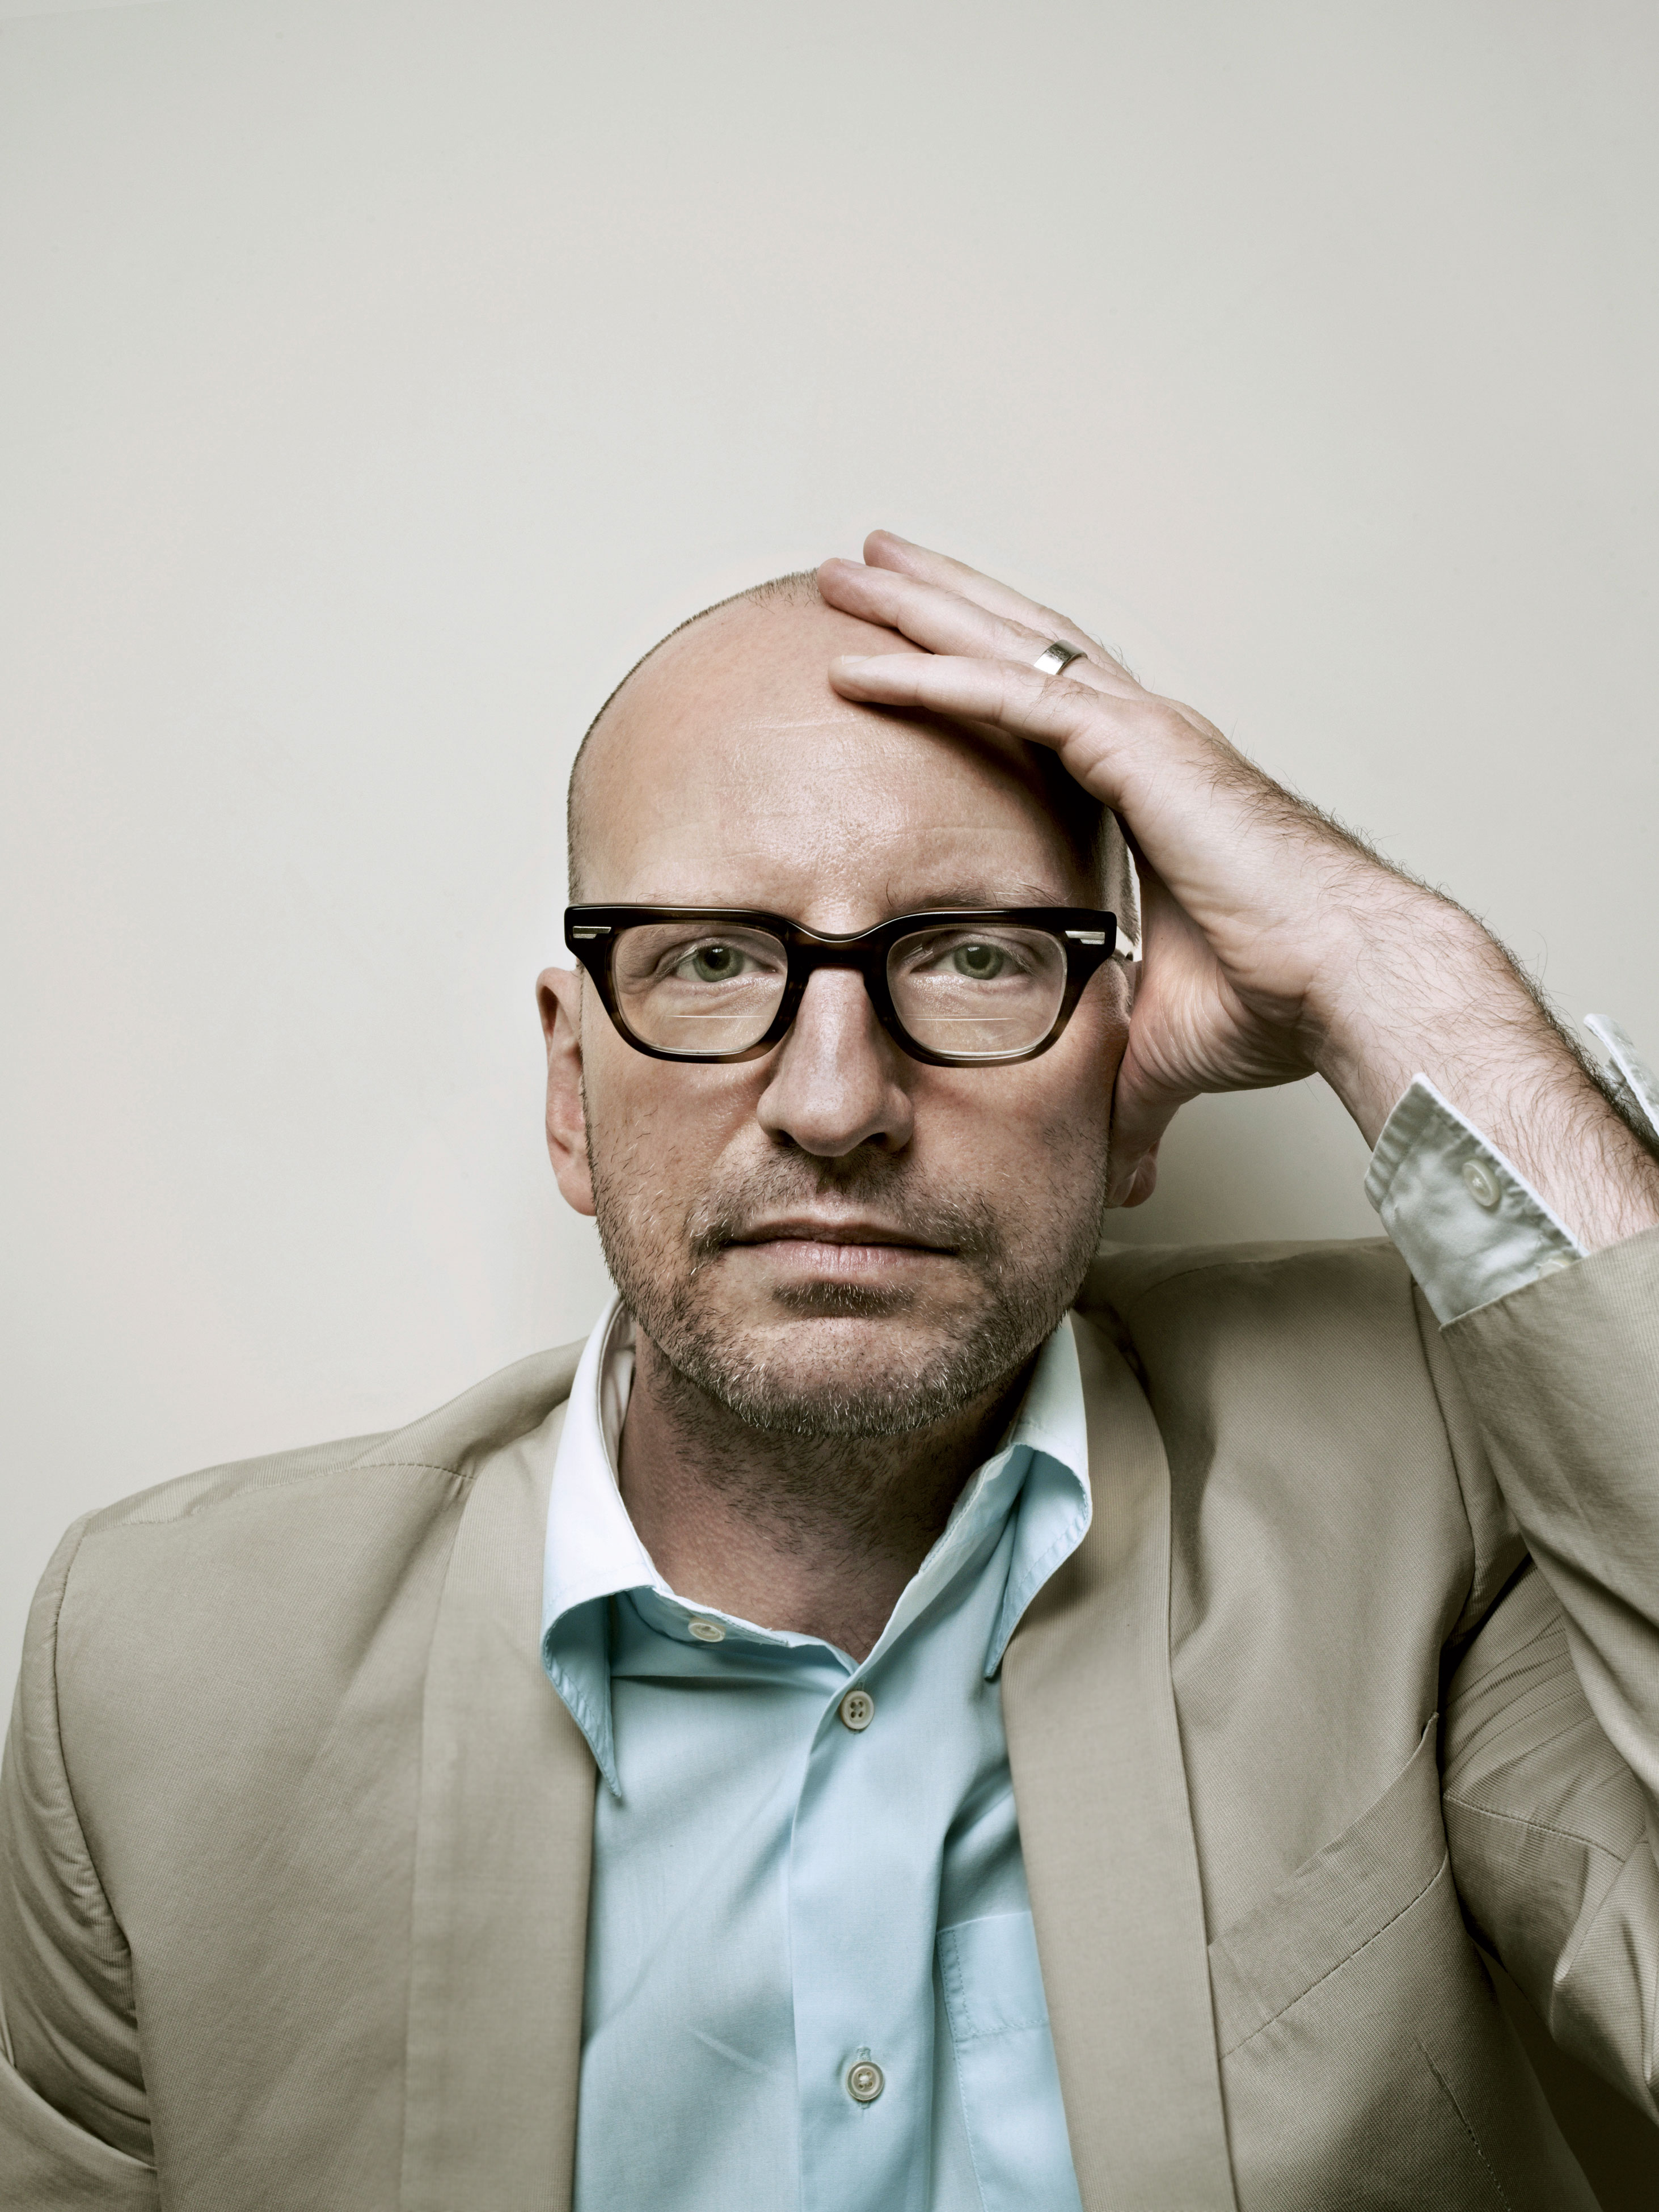 Steven Soderbergh on Quitting Hollywood, Getting the Best Out of J-Lo, and His Love of Girls